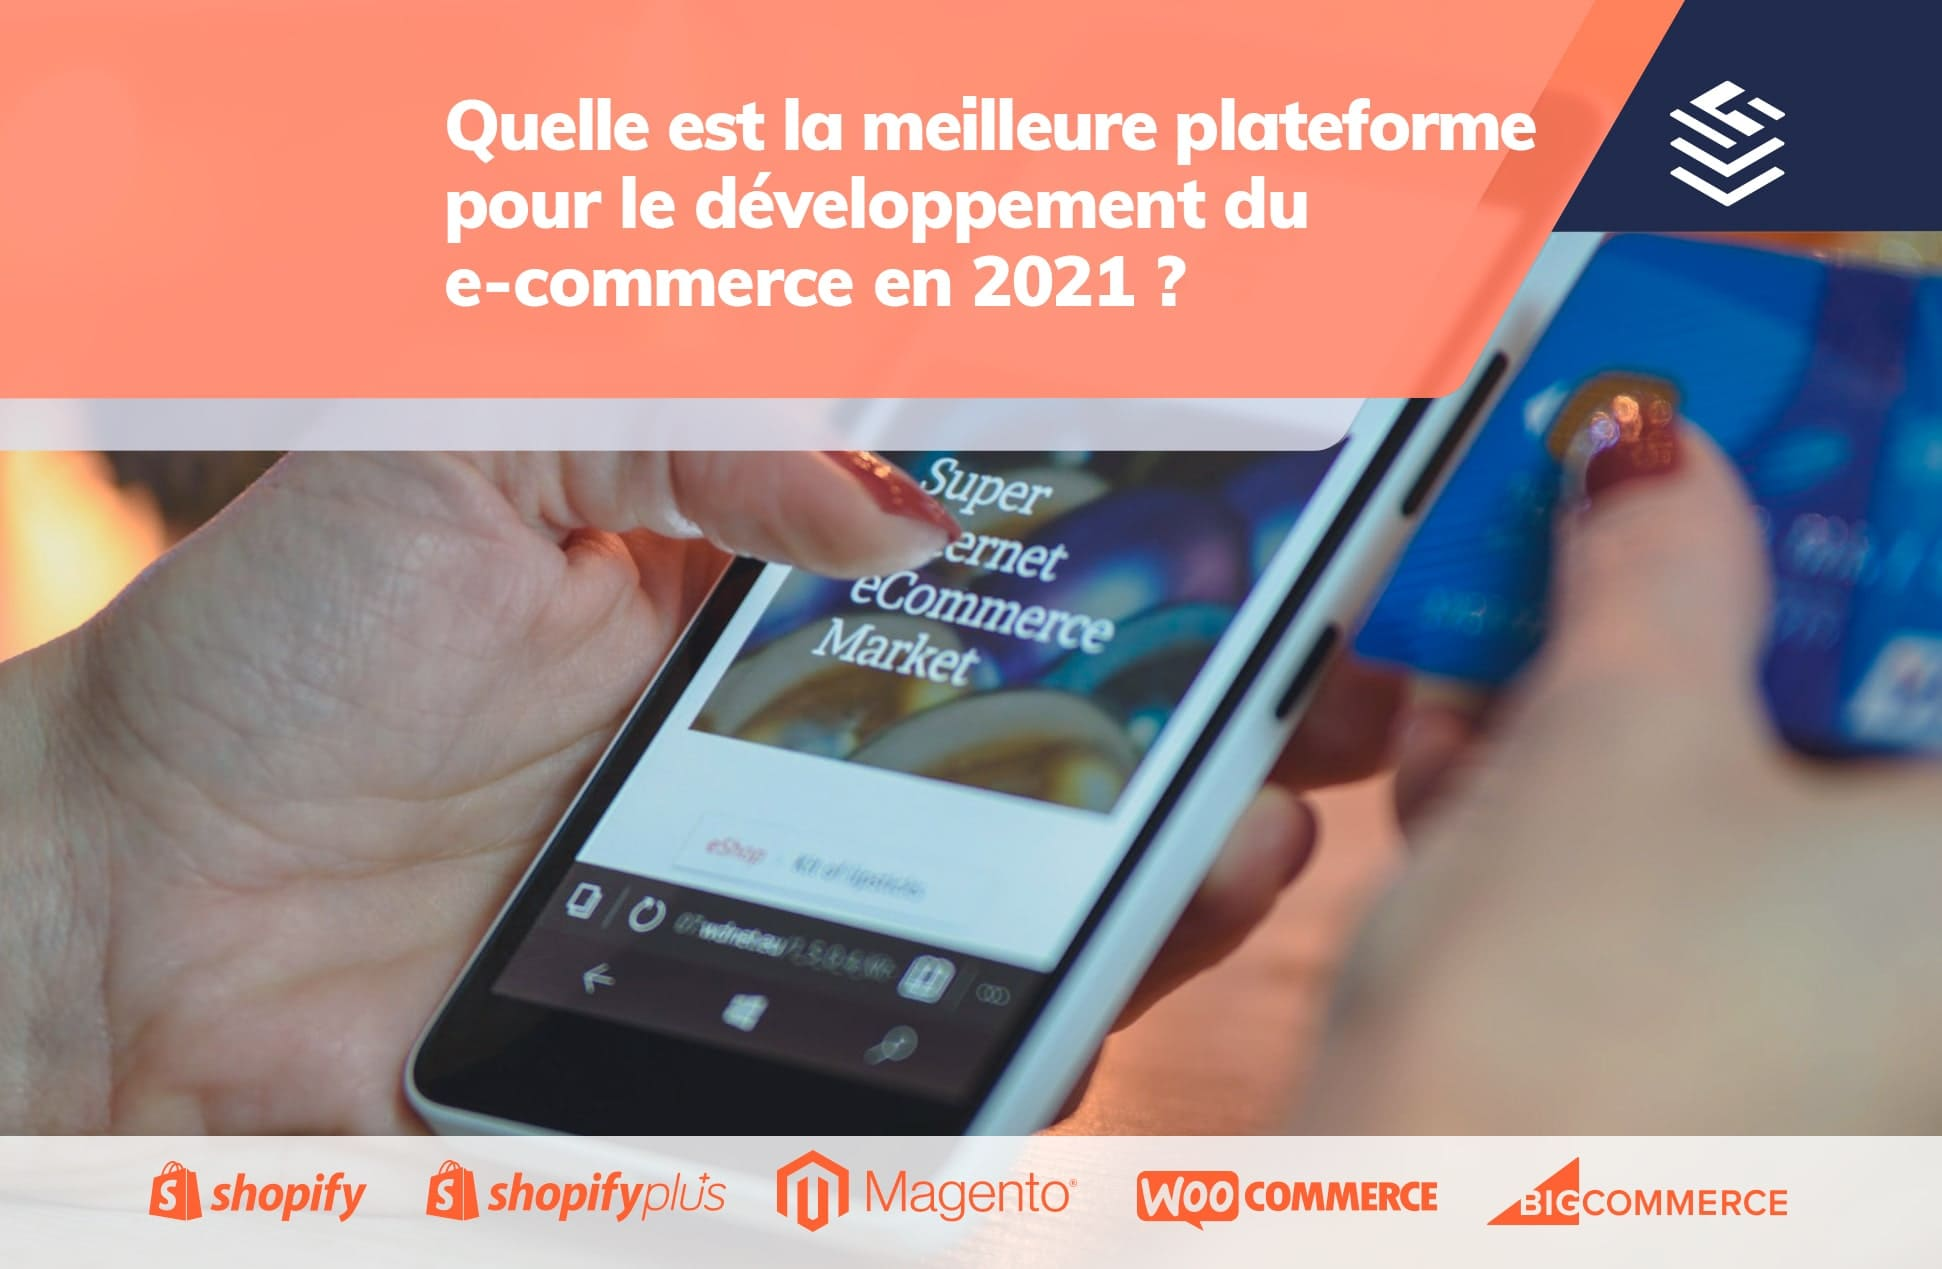 IT Outsourcing Informatique meilleure plateformes ecommerce 2021 FR Post 10